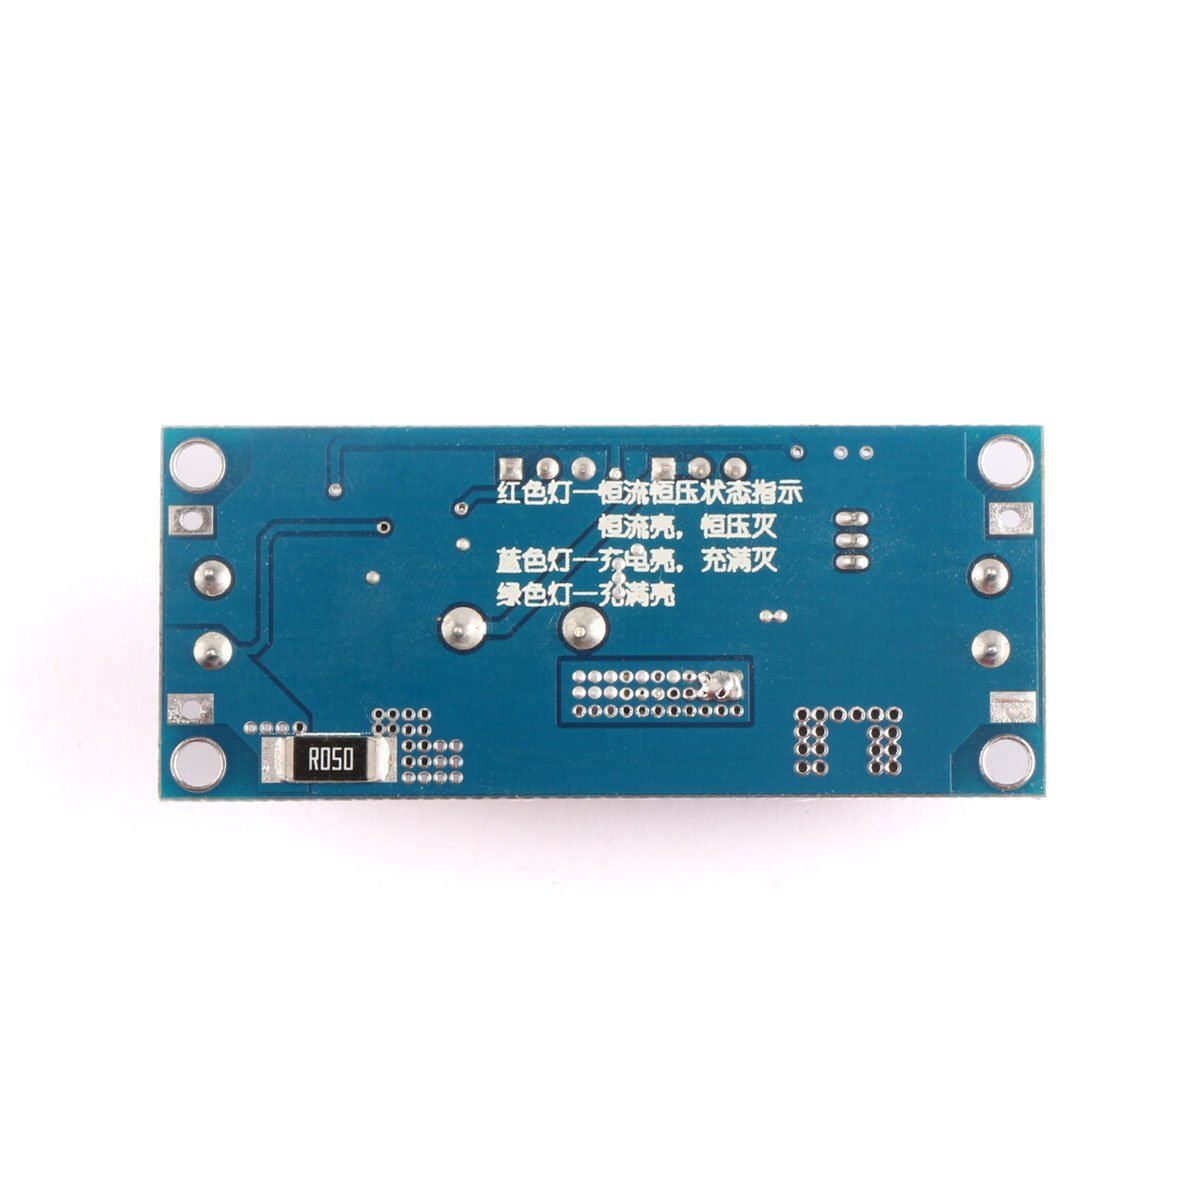 Xl4005 5a Led Driver Lithium Charger Cv Cc Buck Step Down Power Pfc Good Quality Integrated Circuit Chips For Sale Supply 4 38v T 125 36v In Circuits From Electronic Components Supplies On